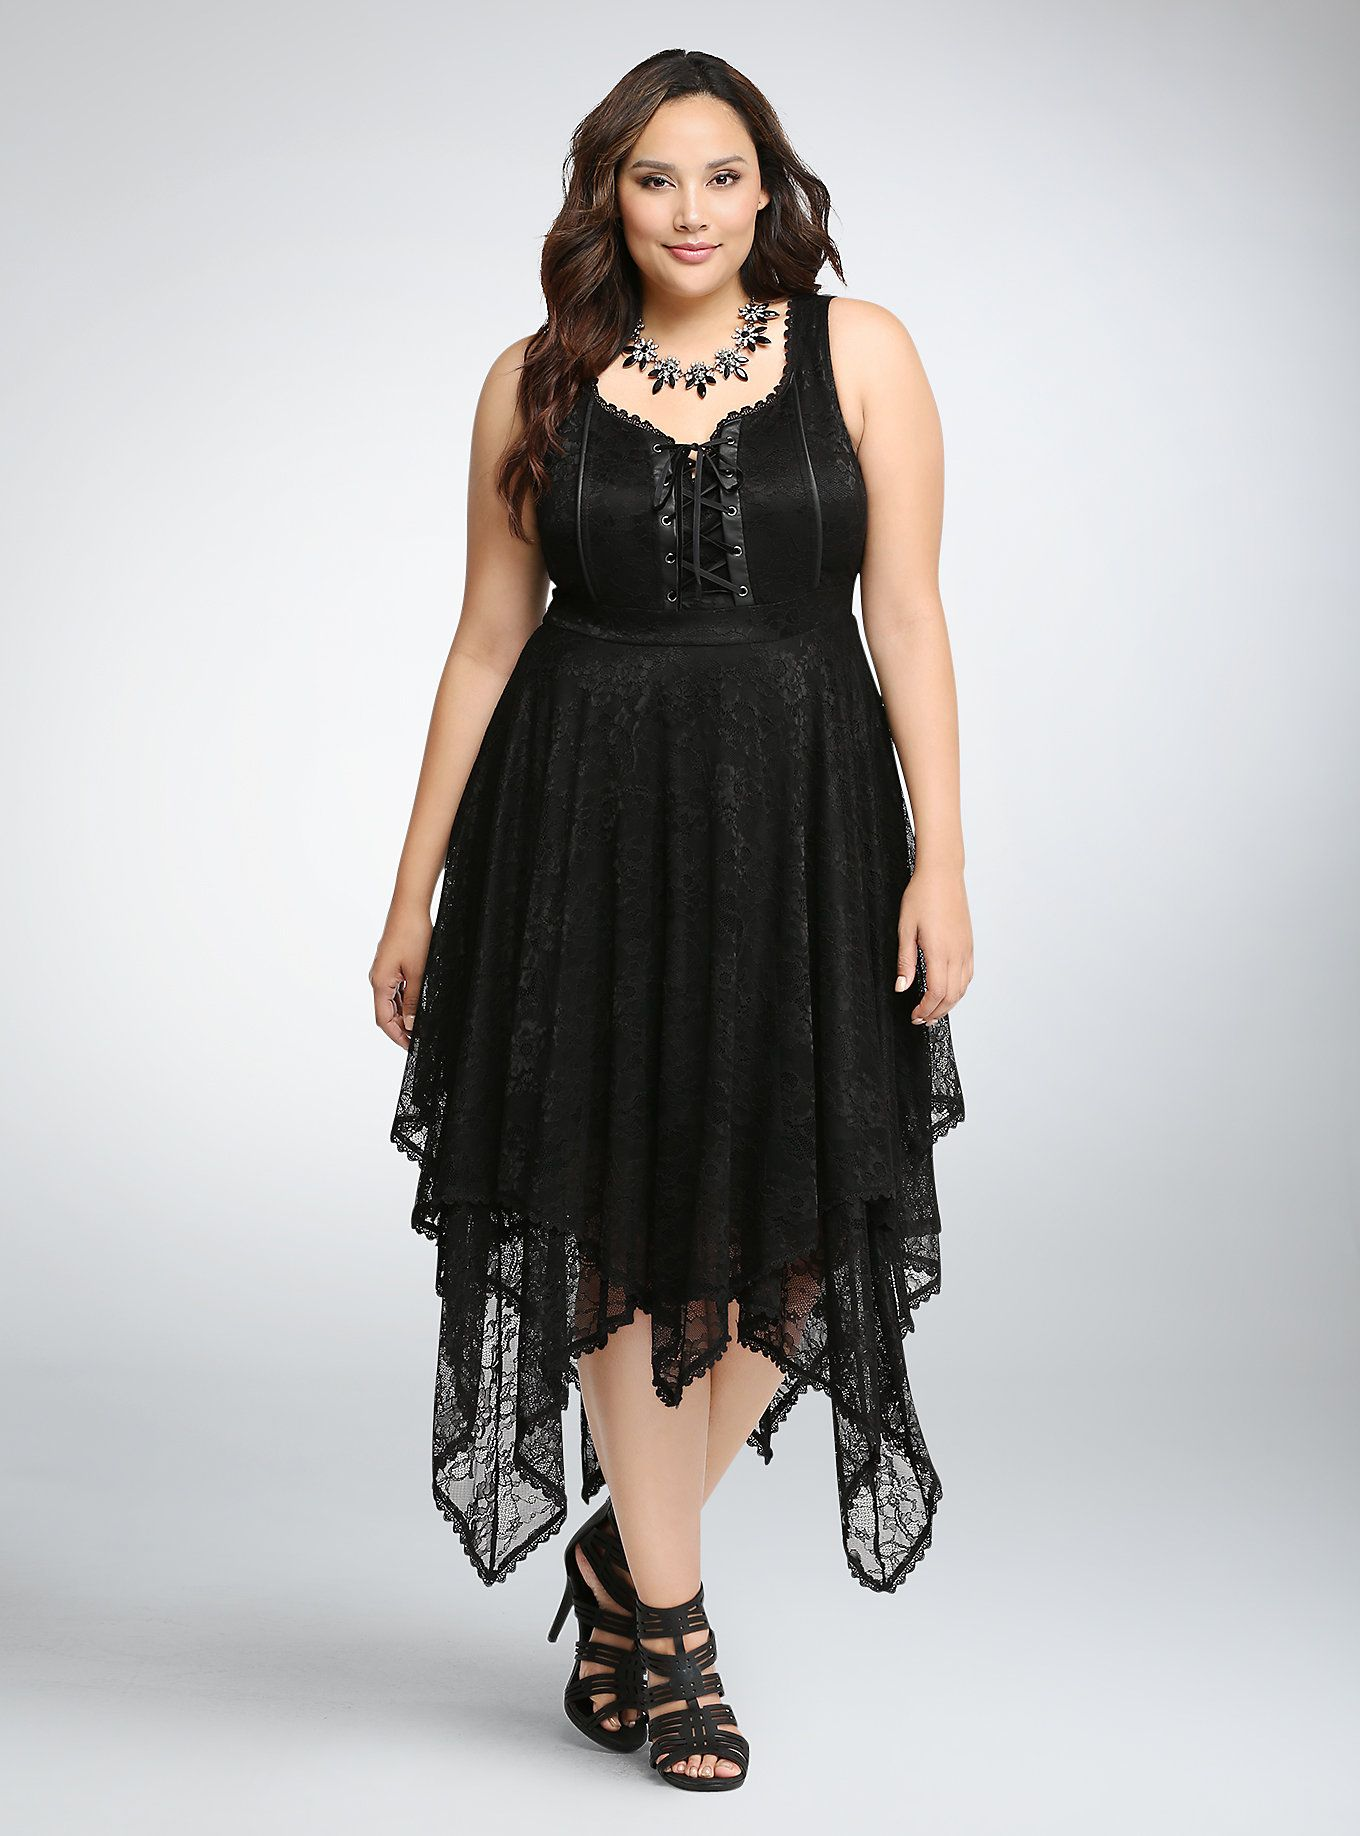 Lace Up Corset Dress | Torrid in 2019 | Plus size black ...